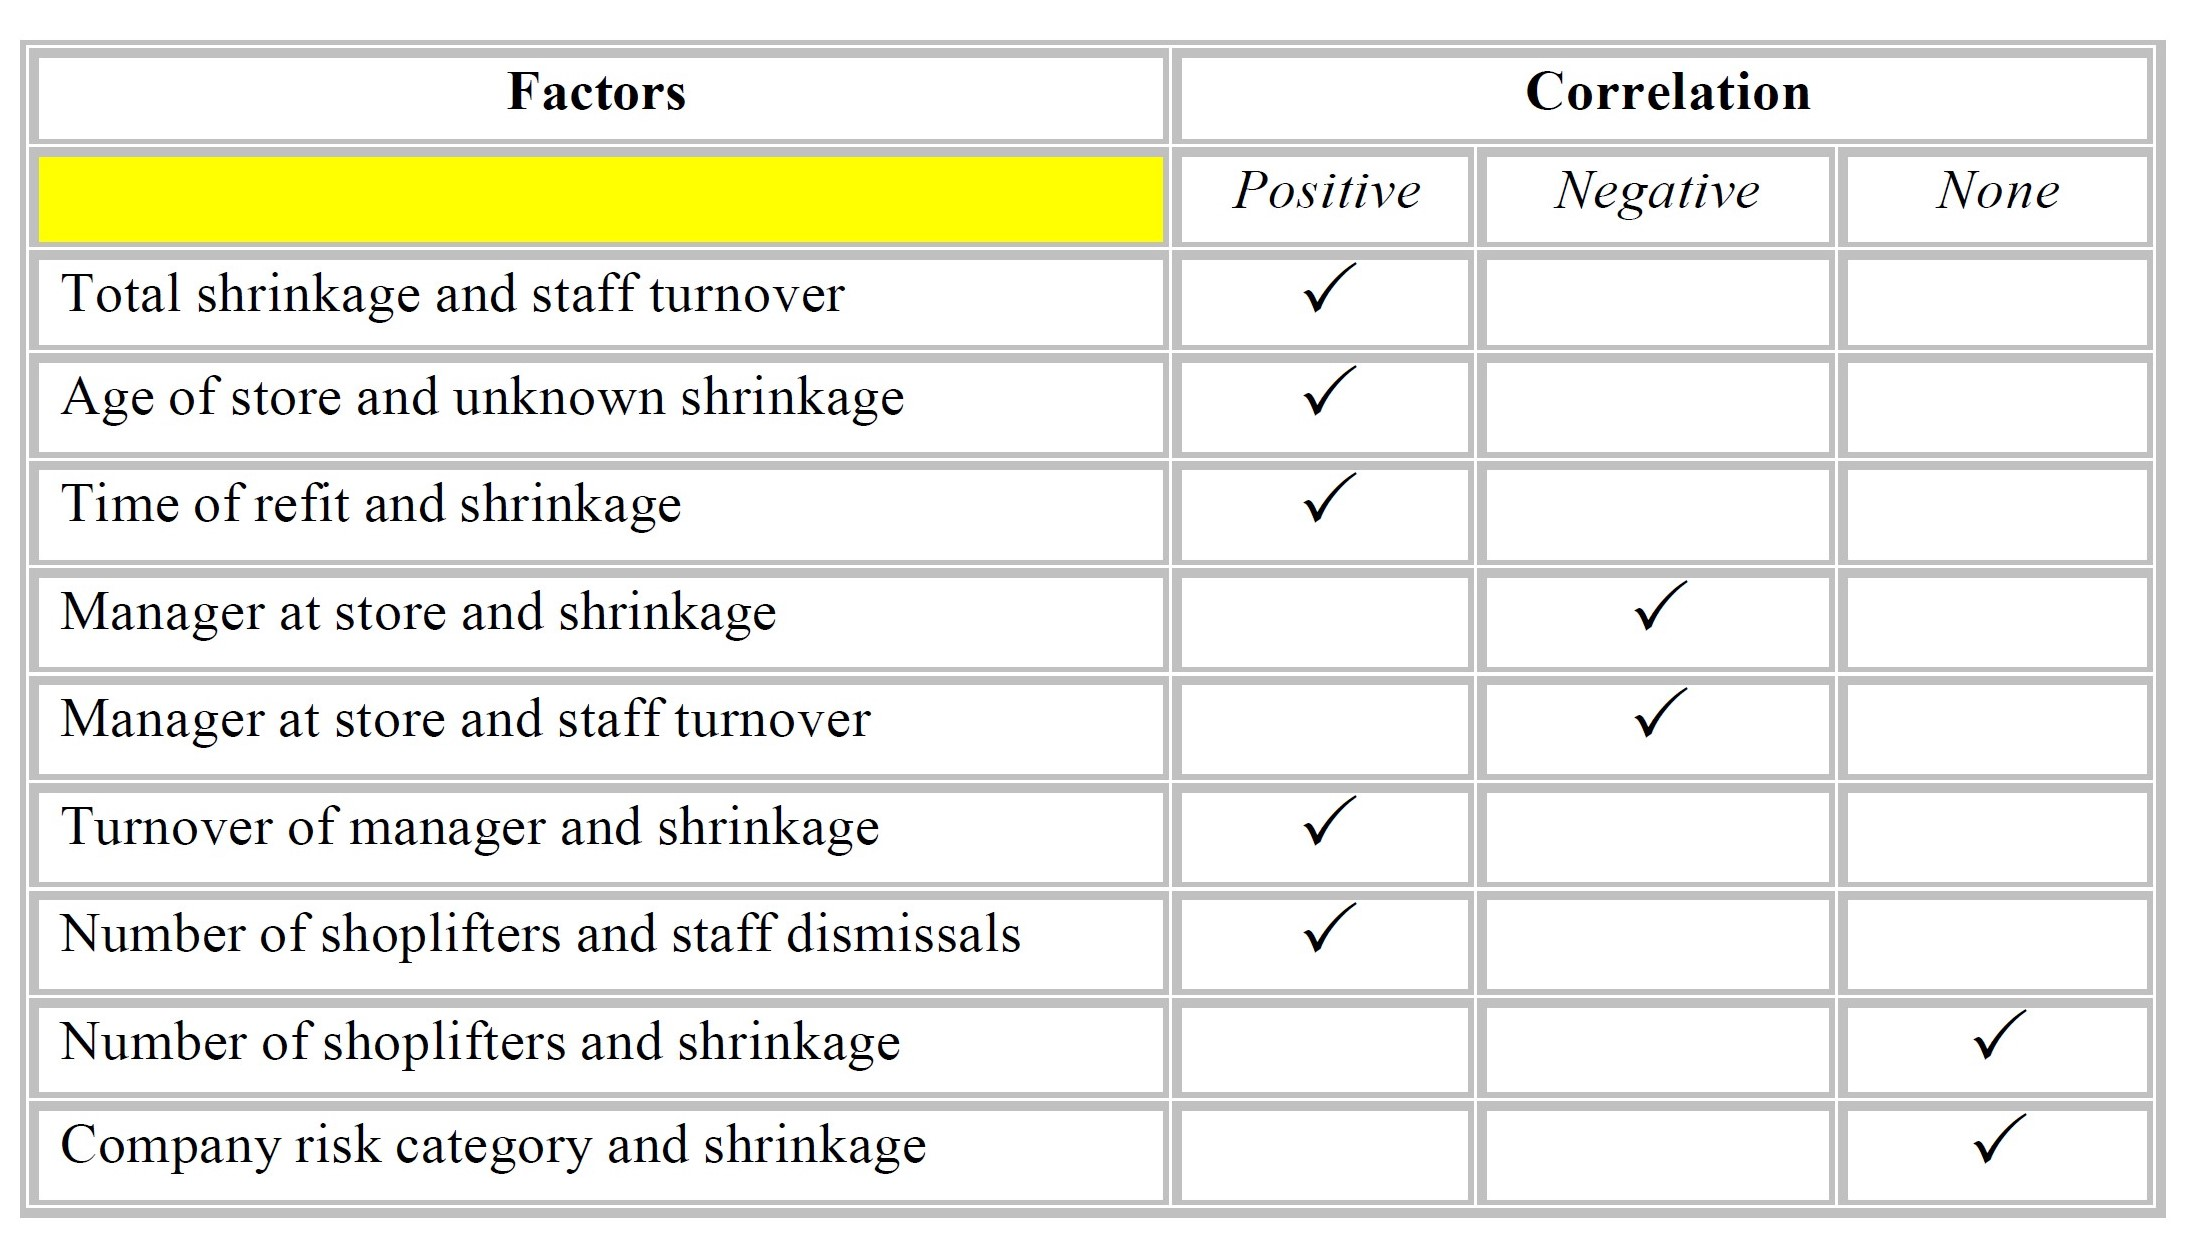 A spreadsheet showing retail shrinkage factors and their correlaton